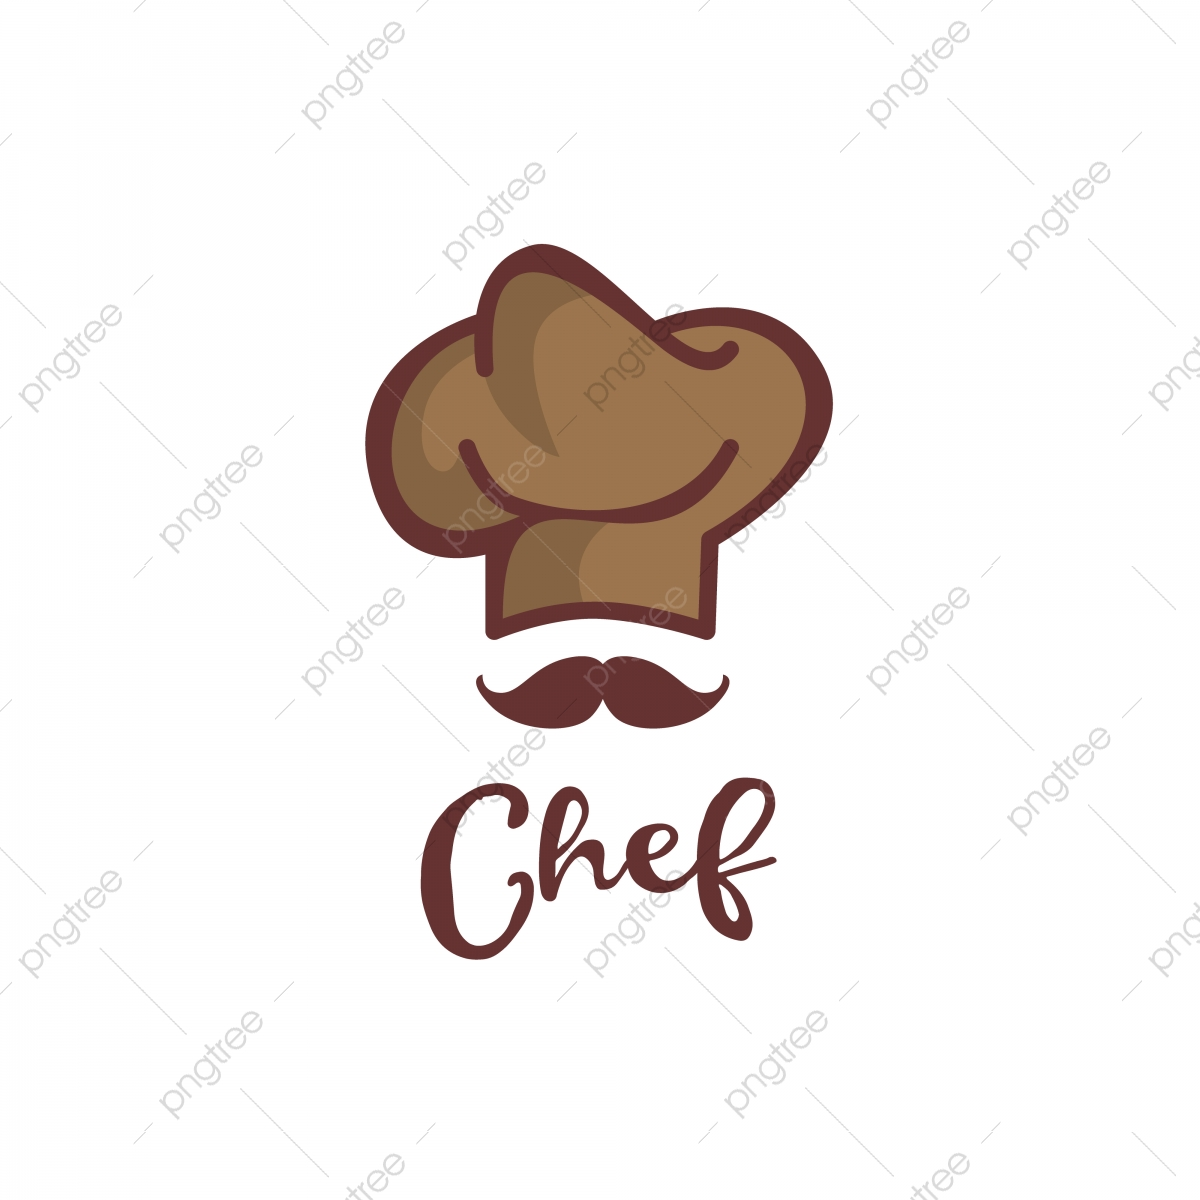 Mustache Chef Logo Restaurant Chef Food Png And Vector With Transparent Background For Free Download